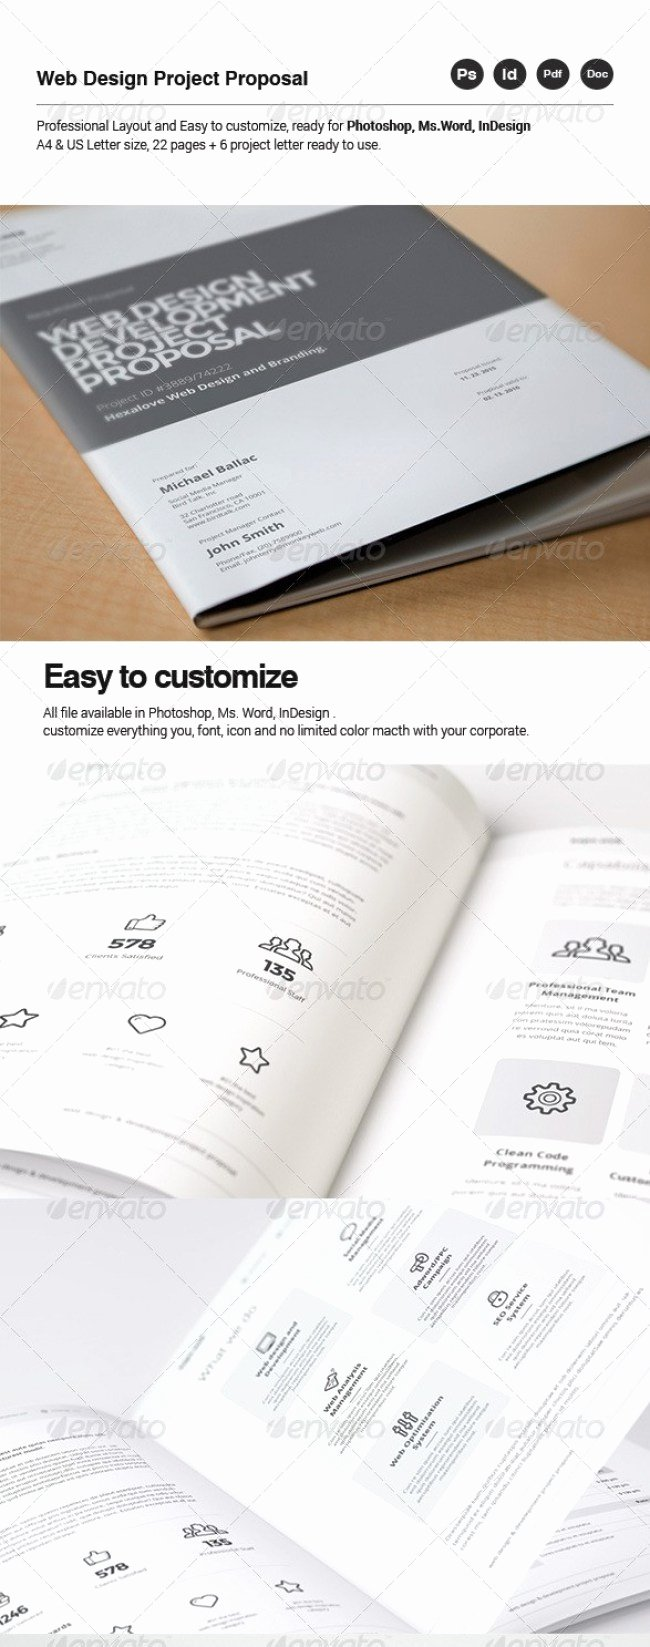 Web Design Proposal Template Inspirational 48 Best Business Proposal Templates In Indesign Psd & Ms